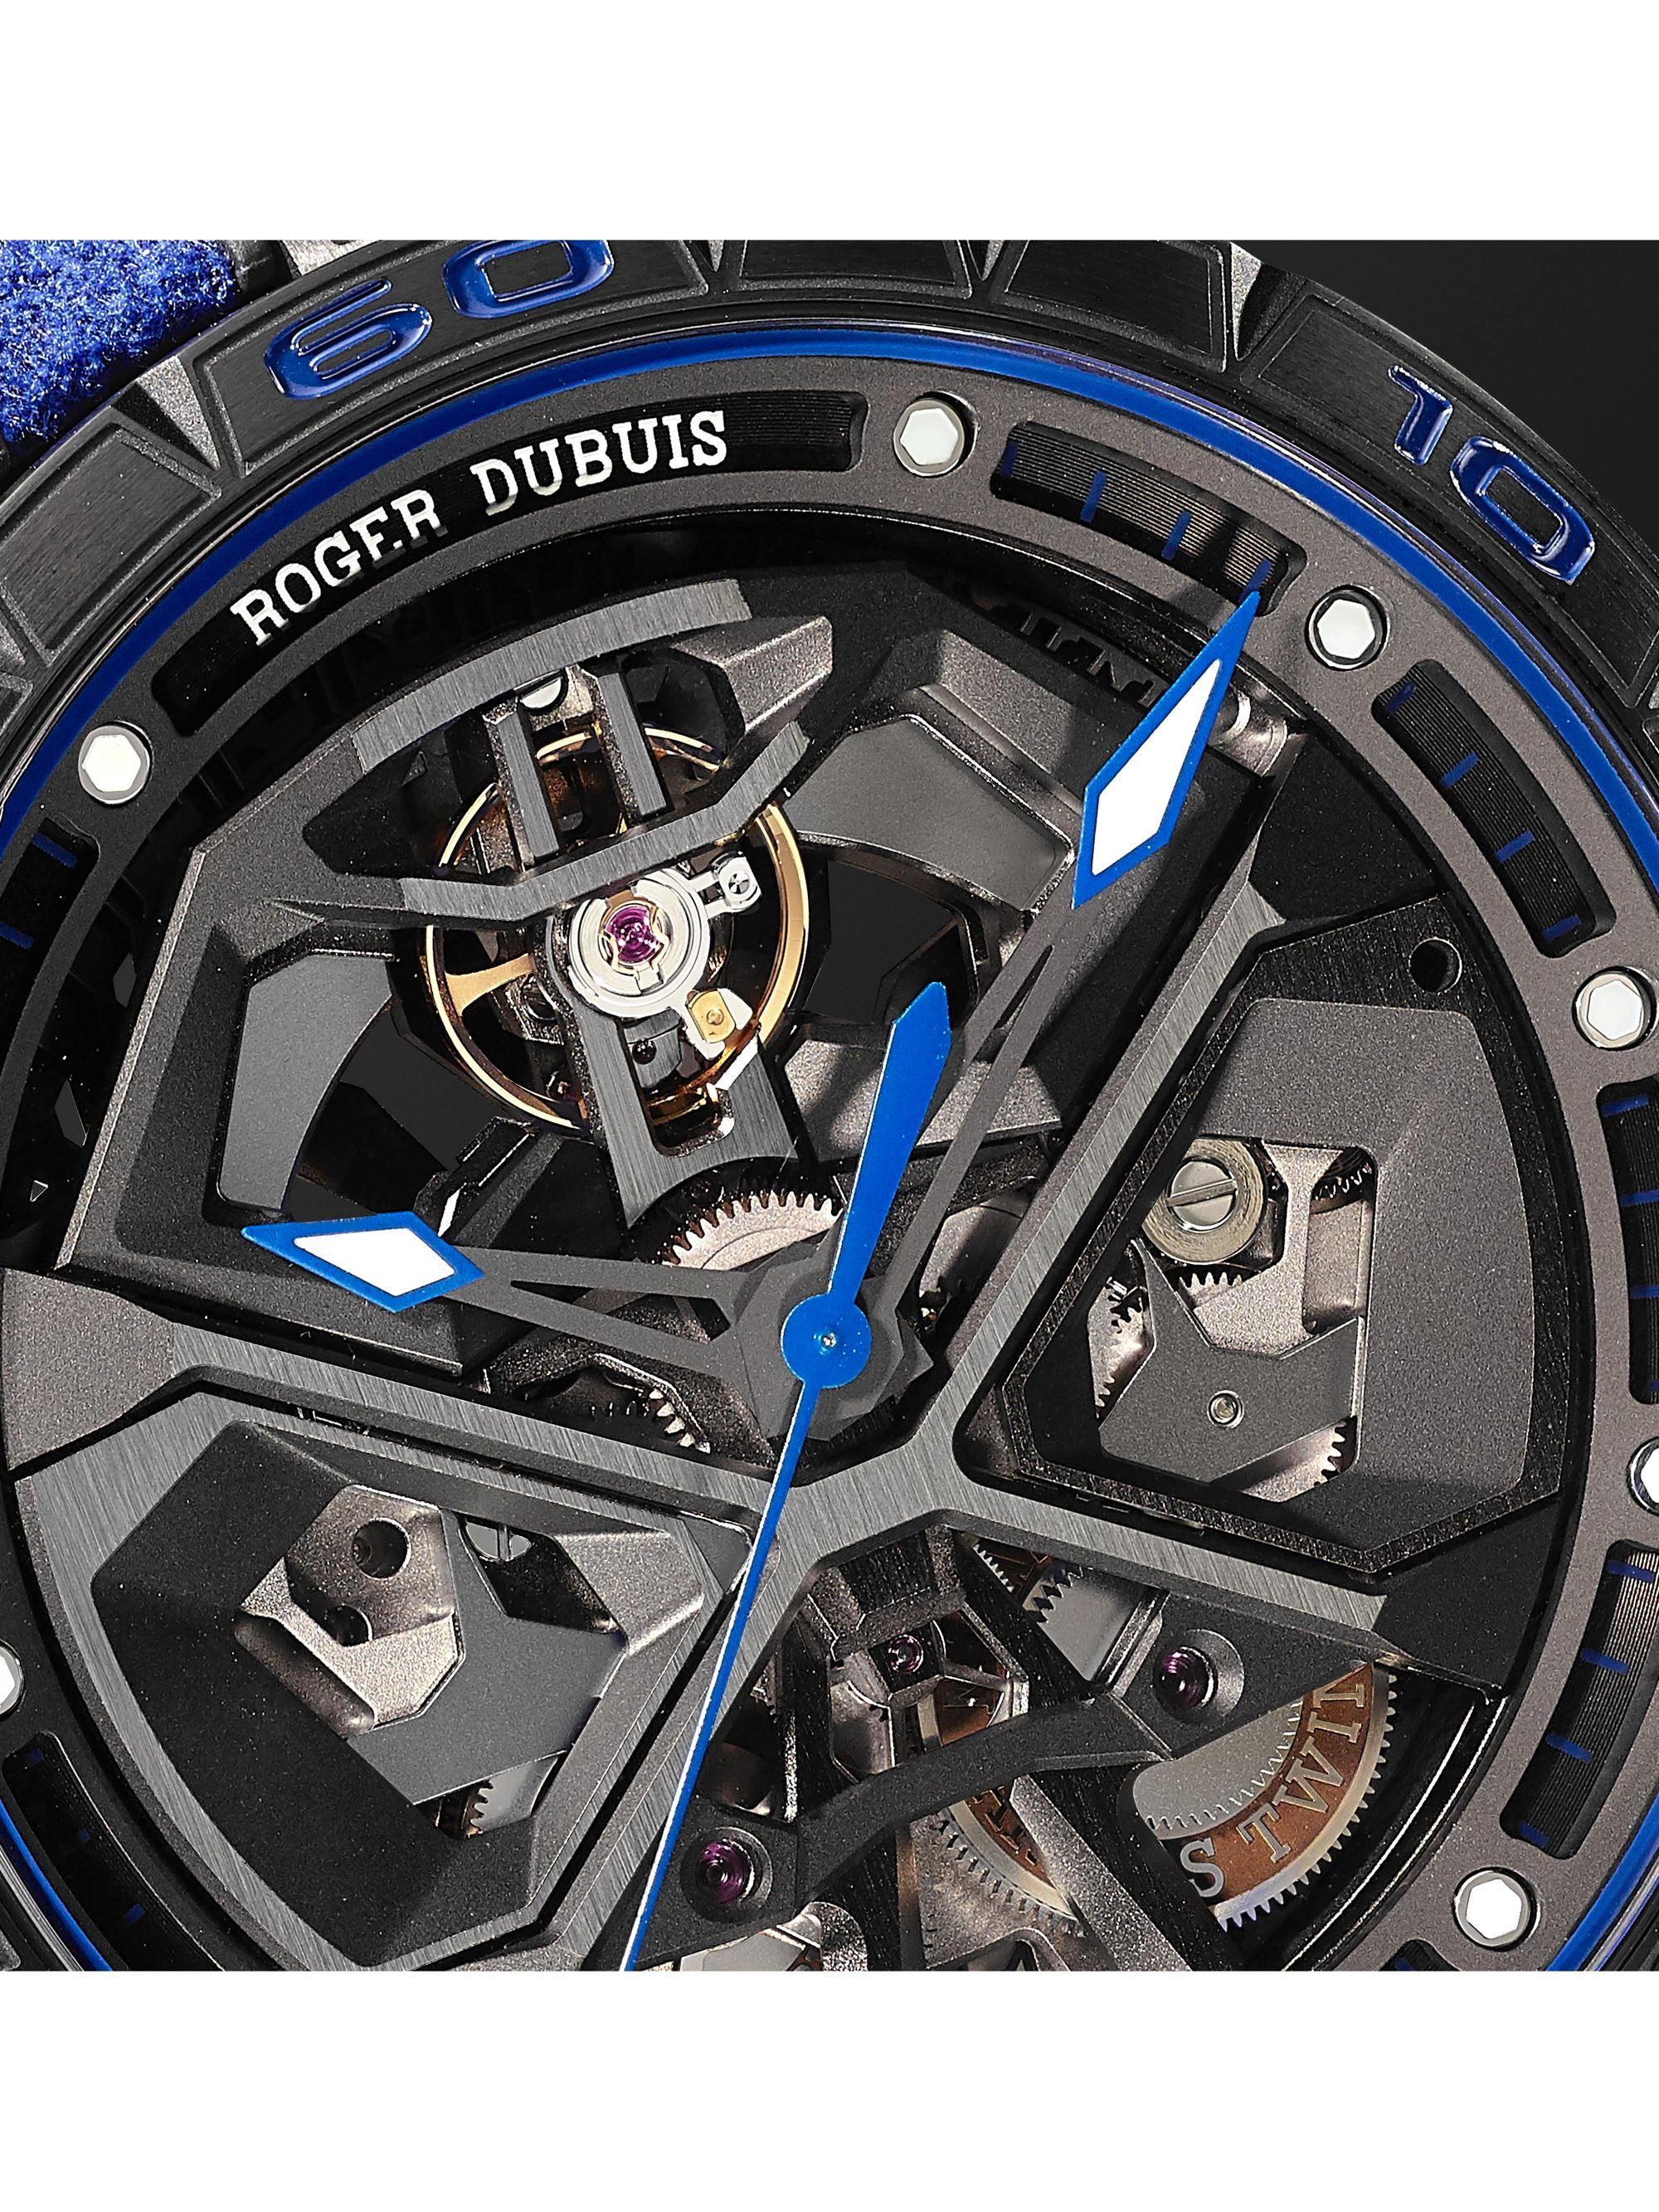 Roger Dubuis Excalibur Huracán Automatic Skeleton 45mm Titanium and Rubber Watch, Ref. No. RDDBEX0749